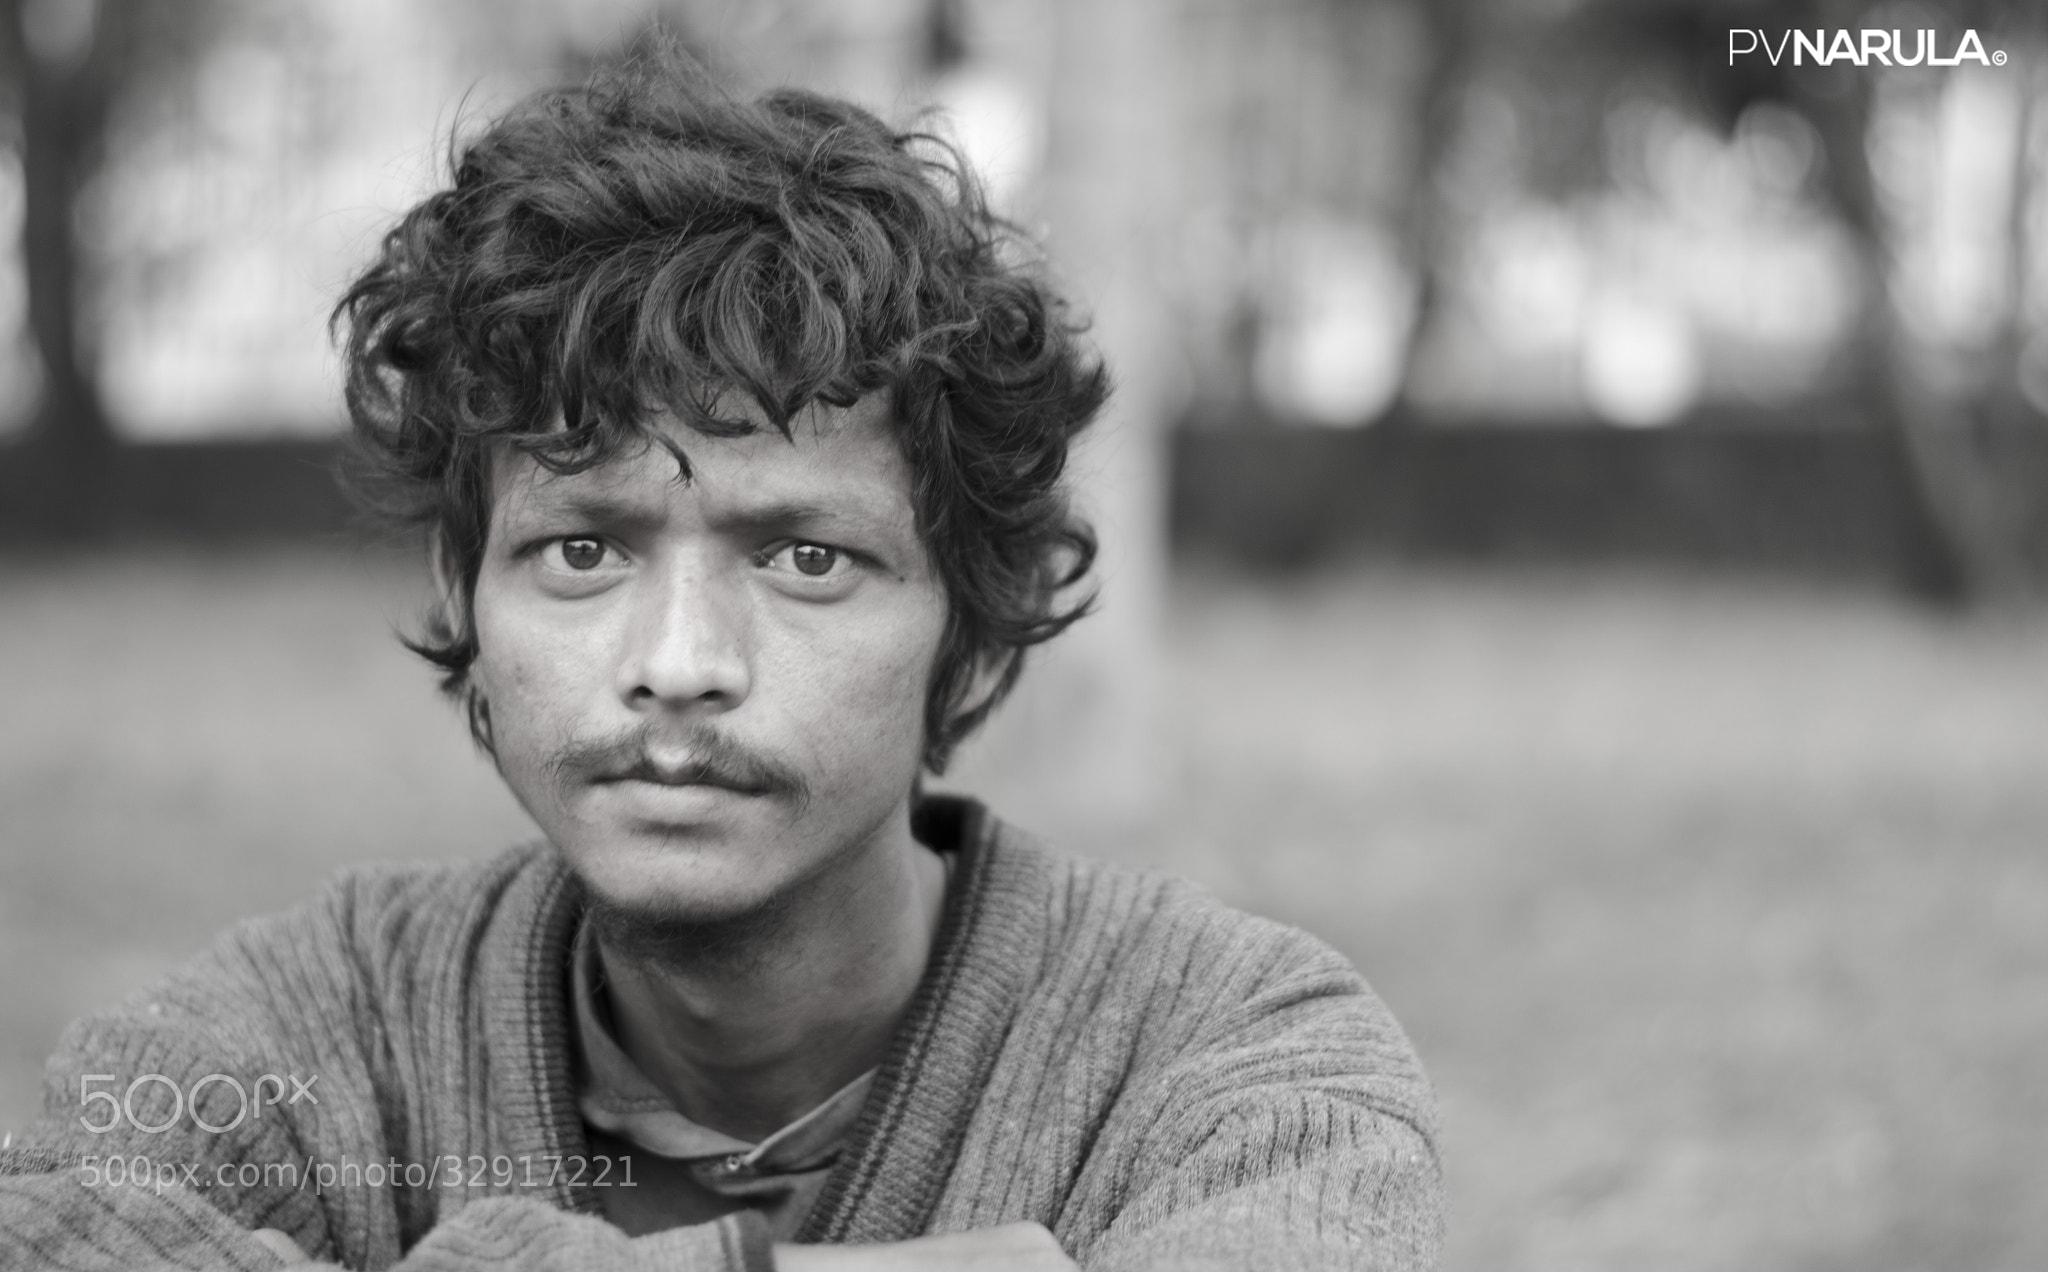 Photograph Poor guy or a strong fellow by priyavrat narula on 500px